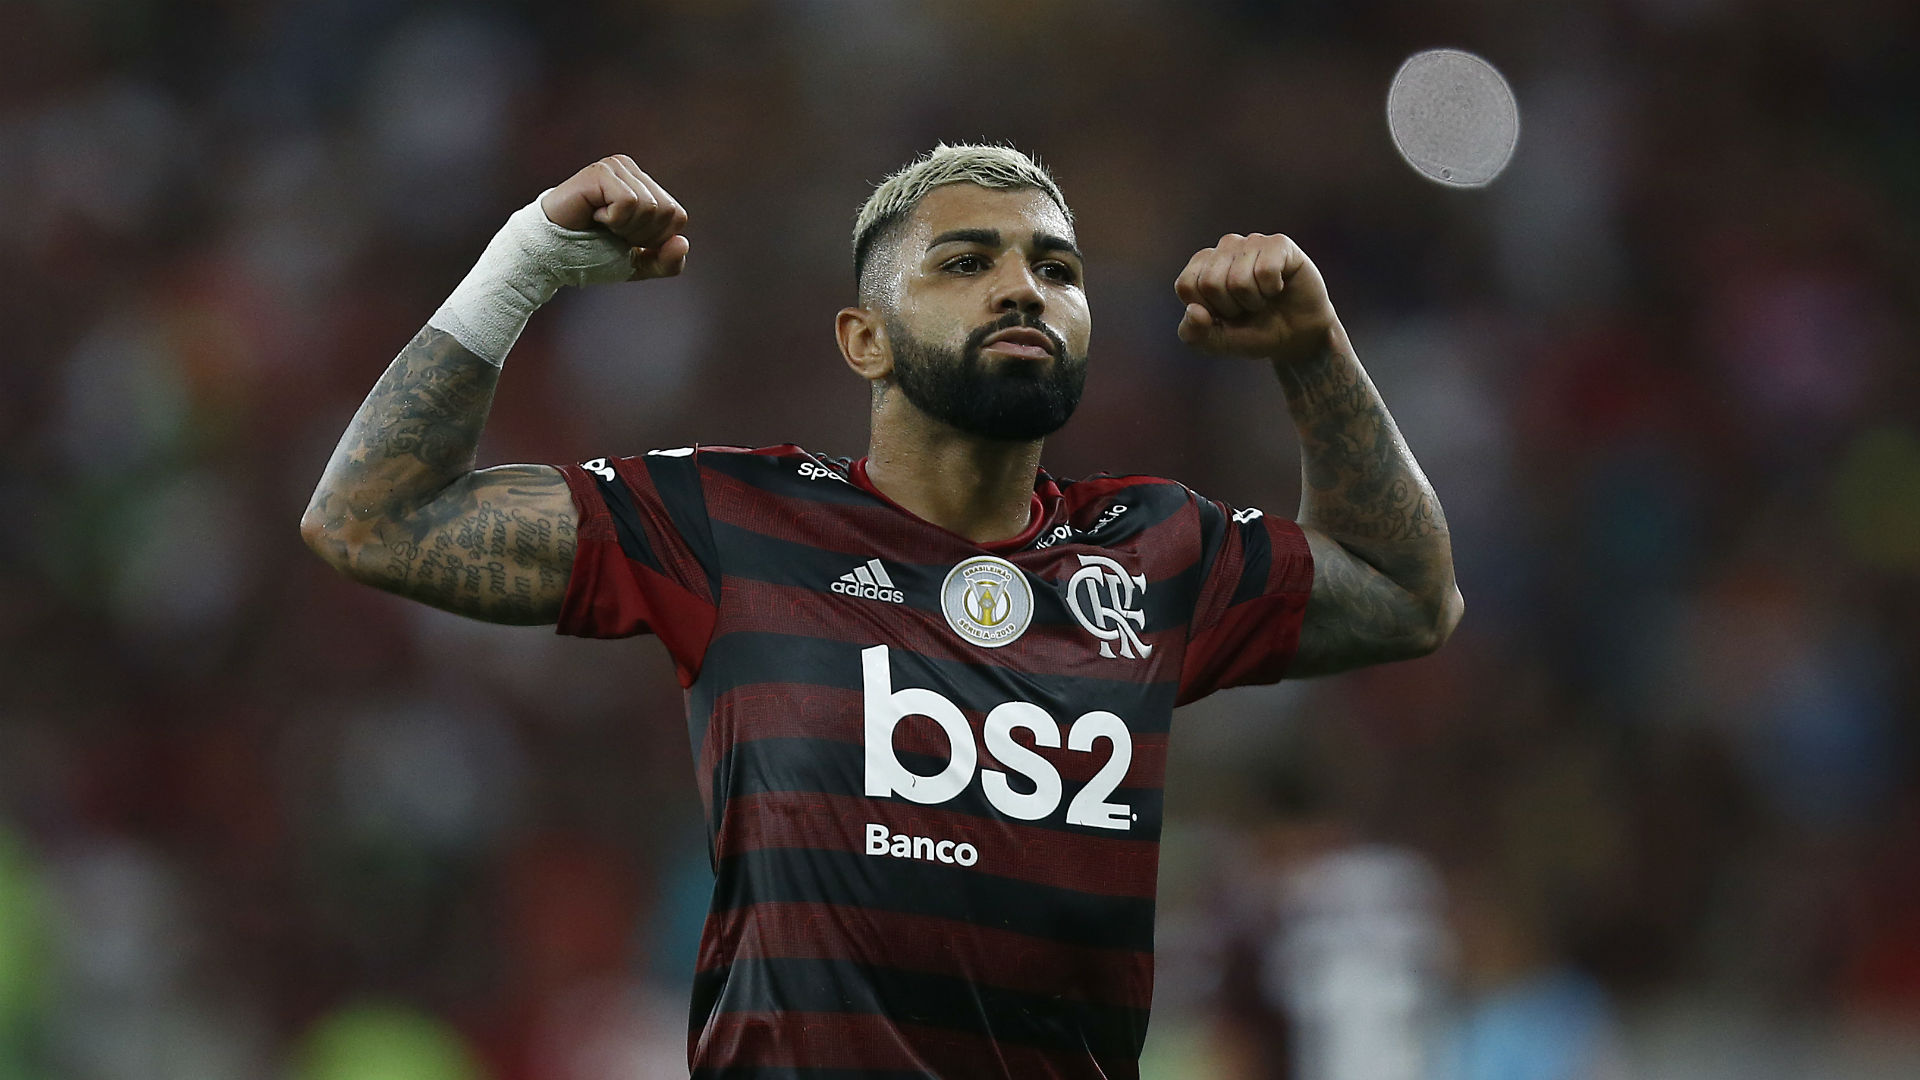 Copa Libertadores final: Europe beckons again for rejuvenated Flamengo star Gabigol